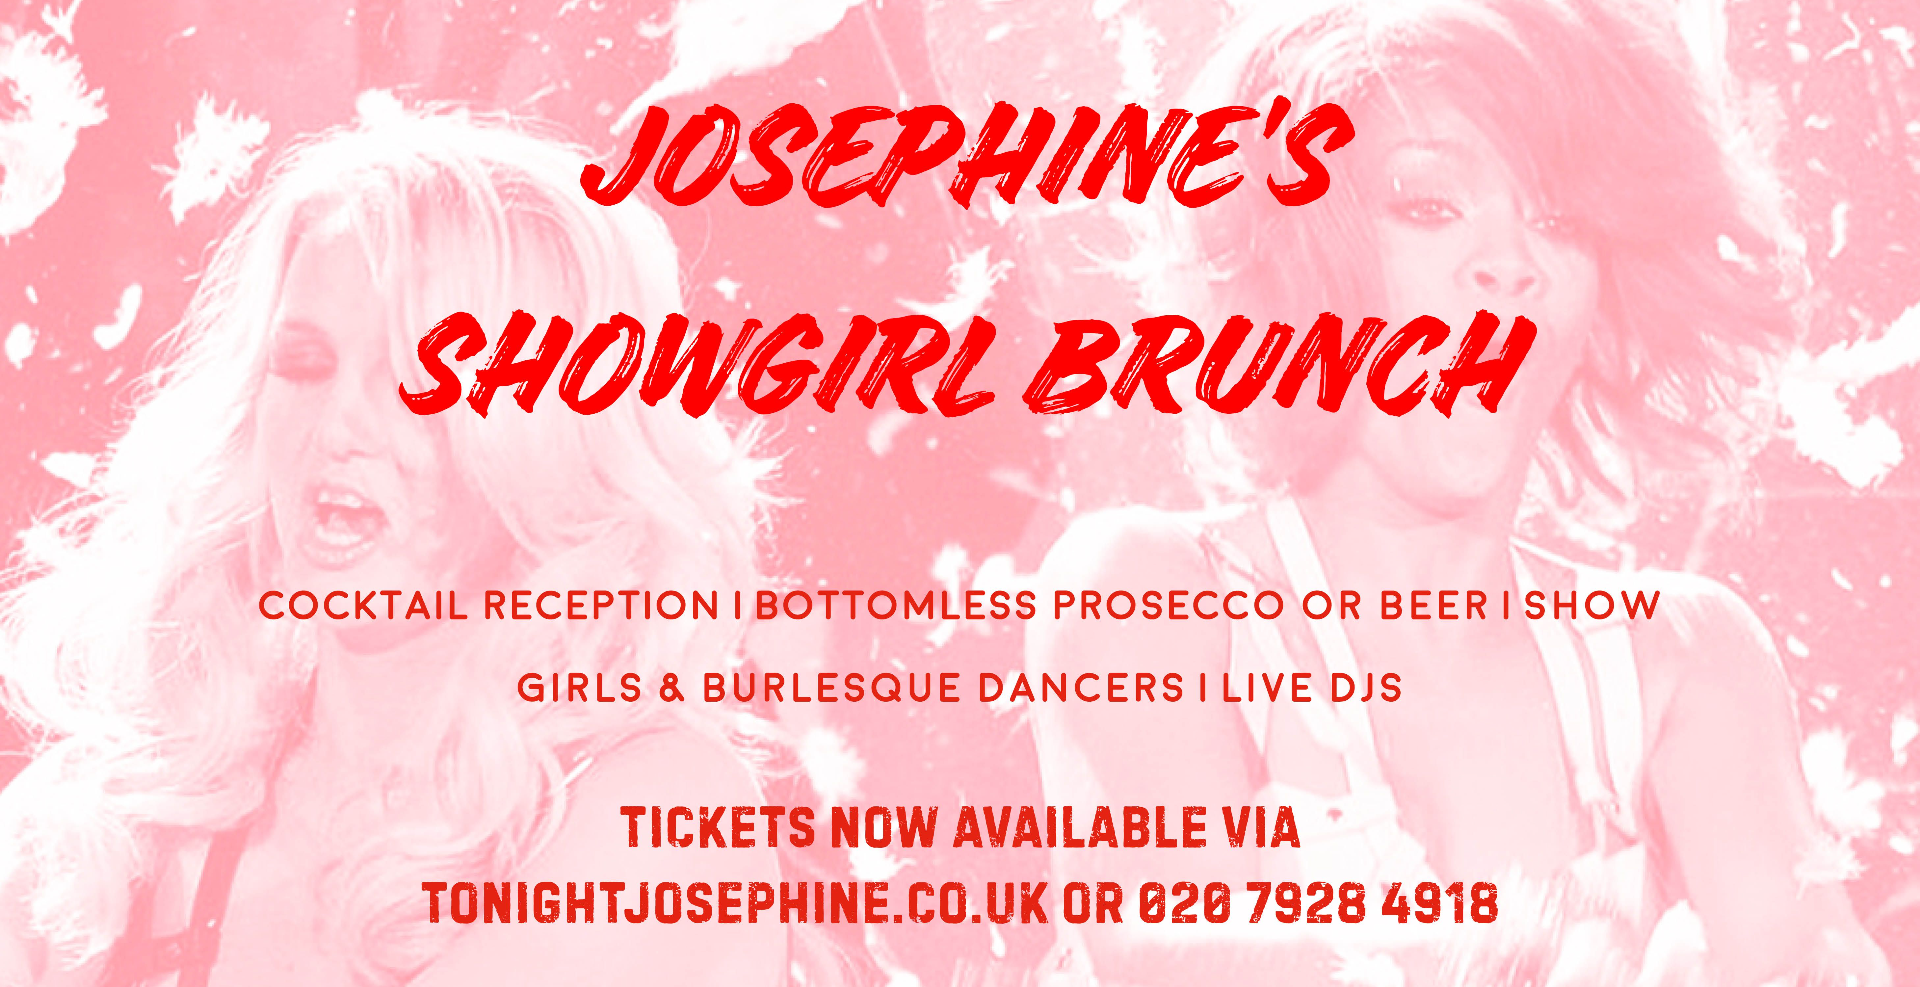 Josephine's Showgirl Brunch